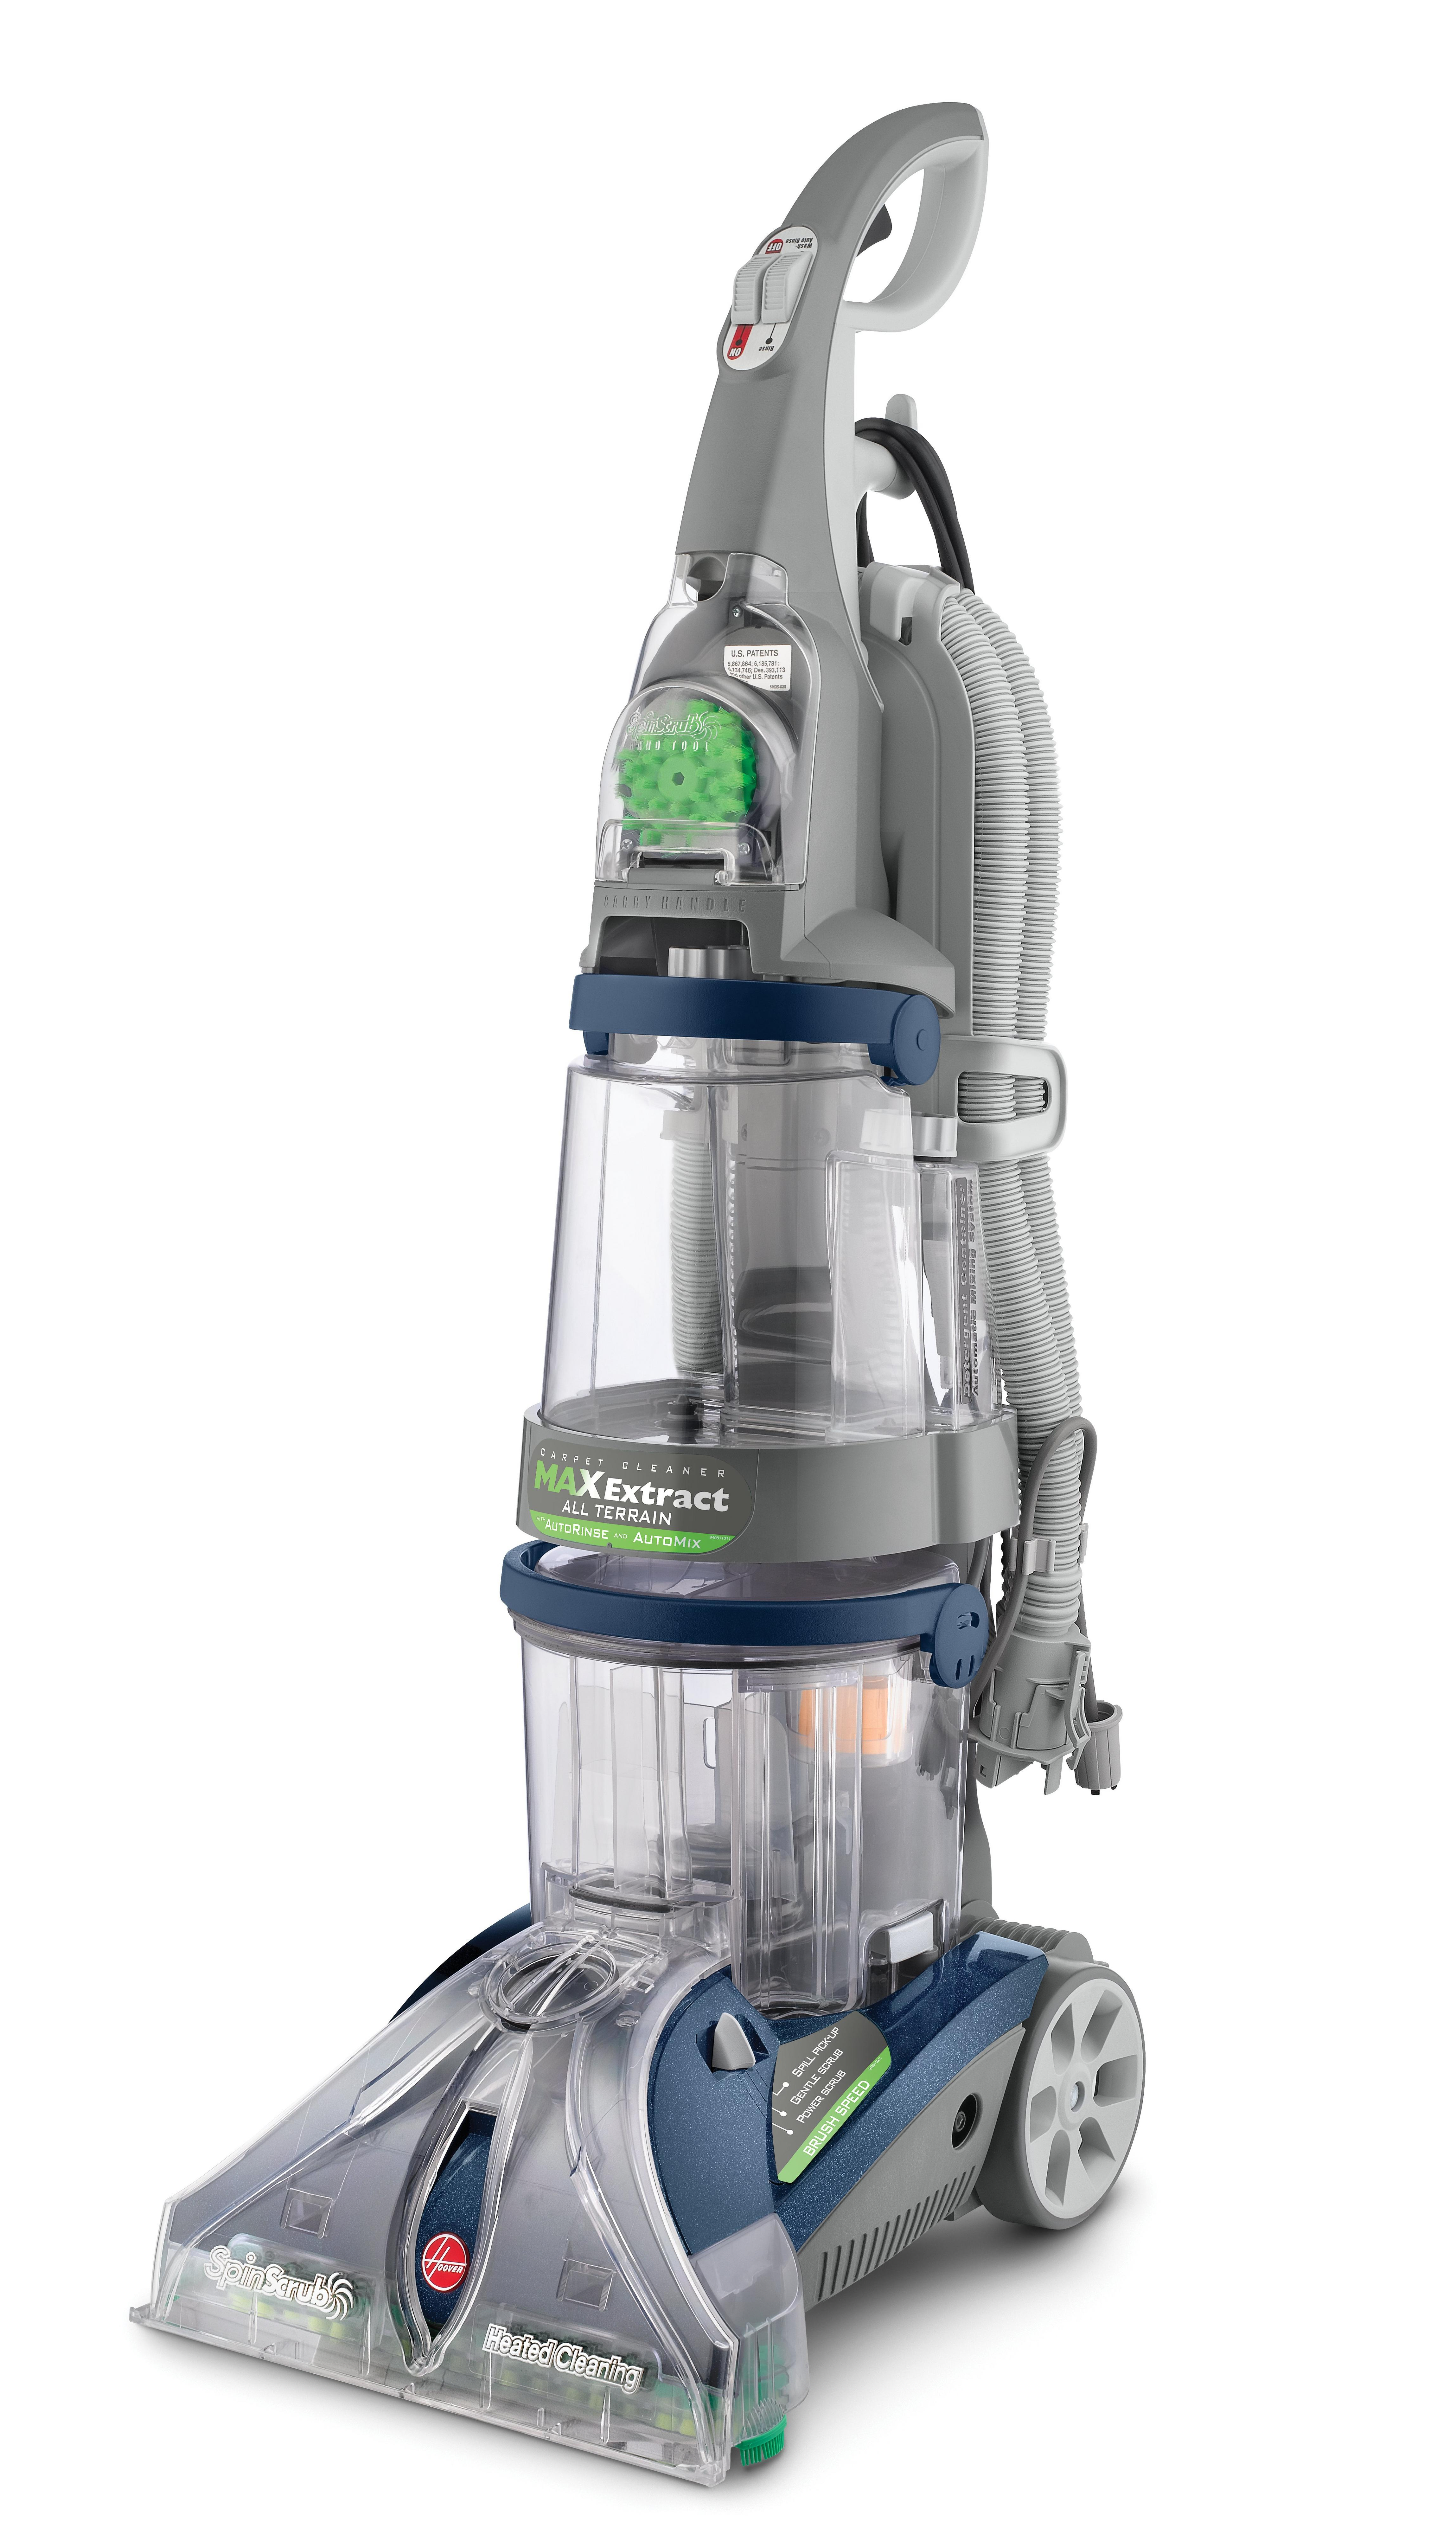 Max Extract Dual V WidePath Carpet Washer2